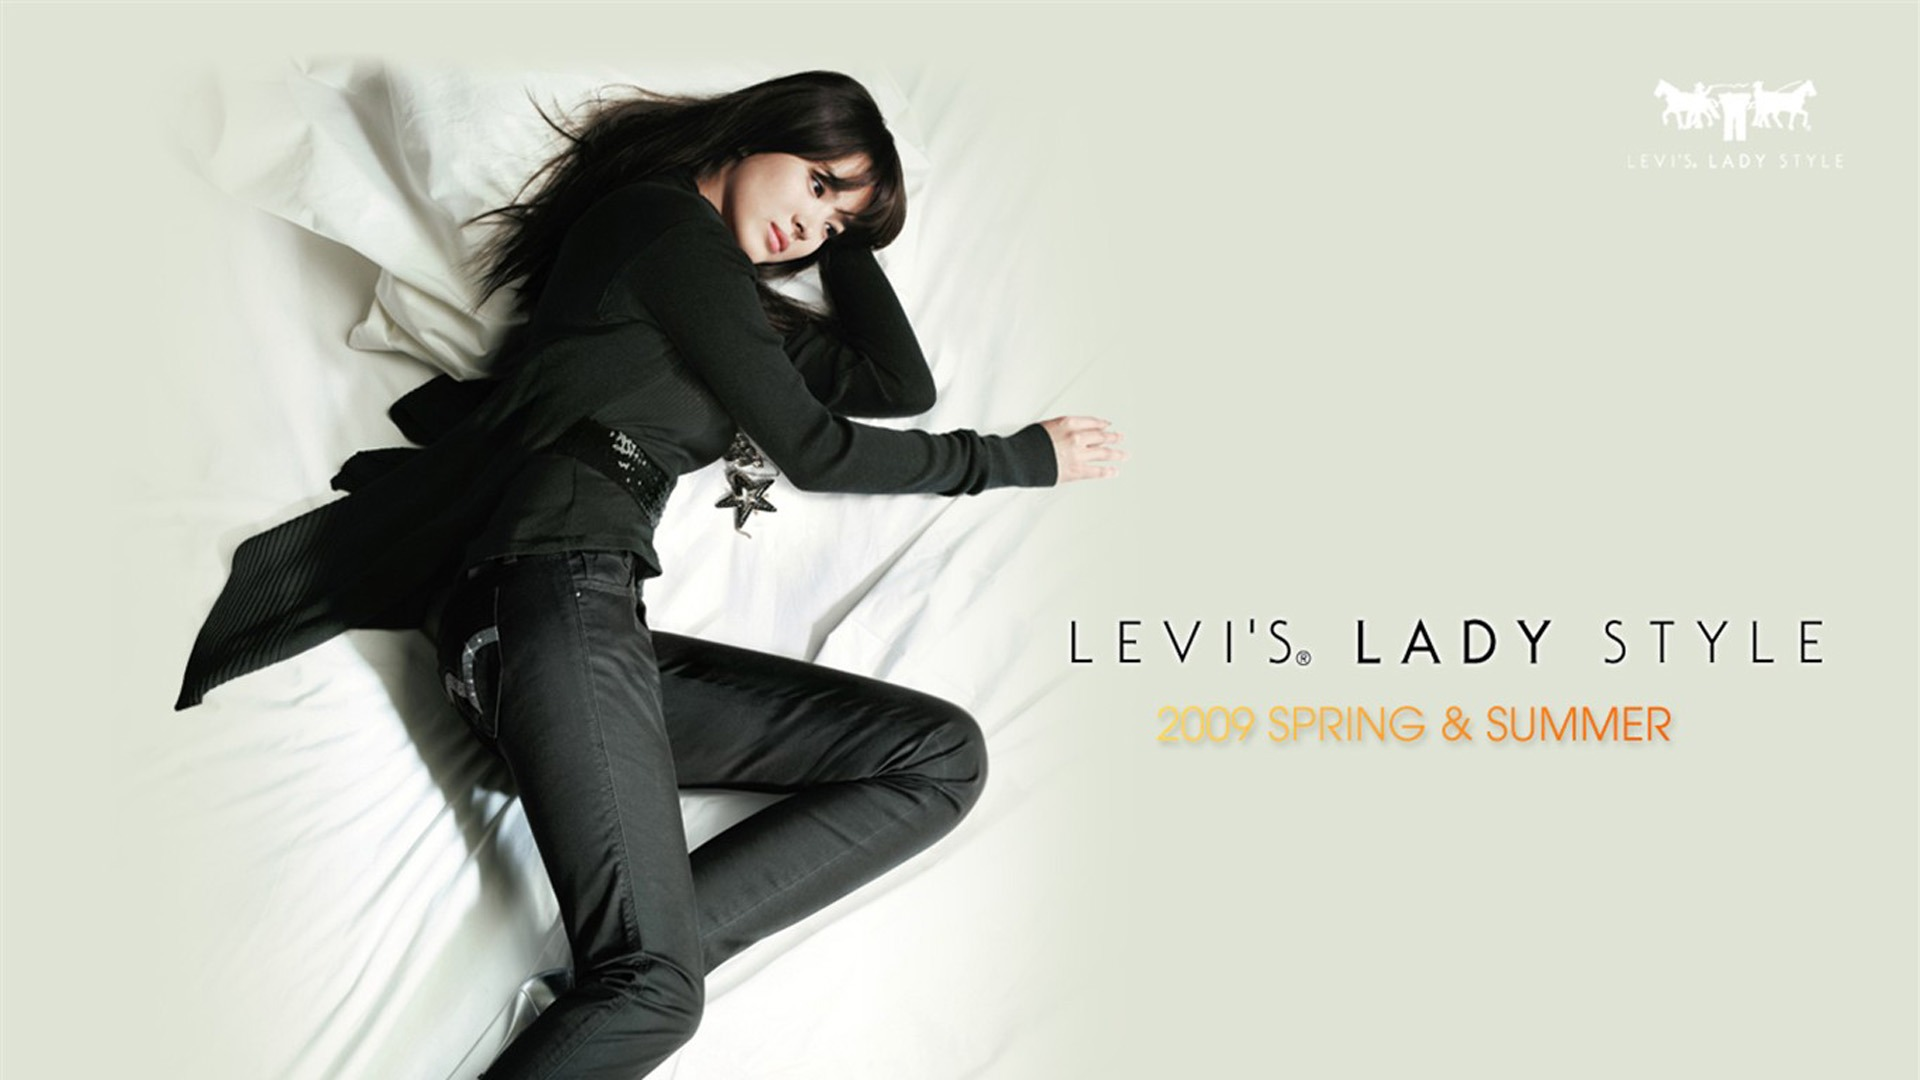 levis lady style clothing - photo #43